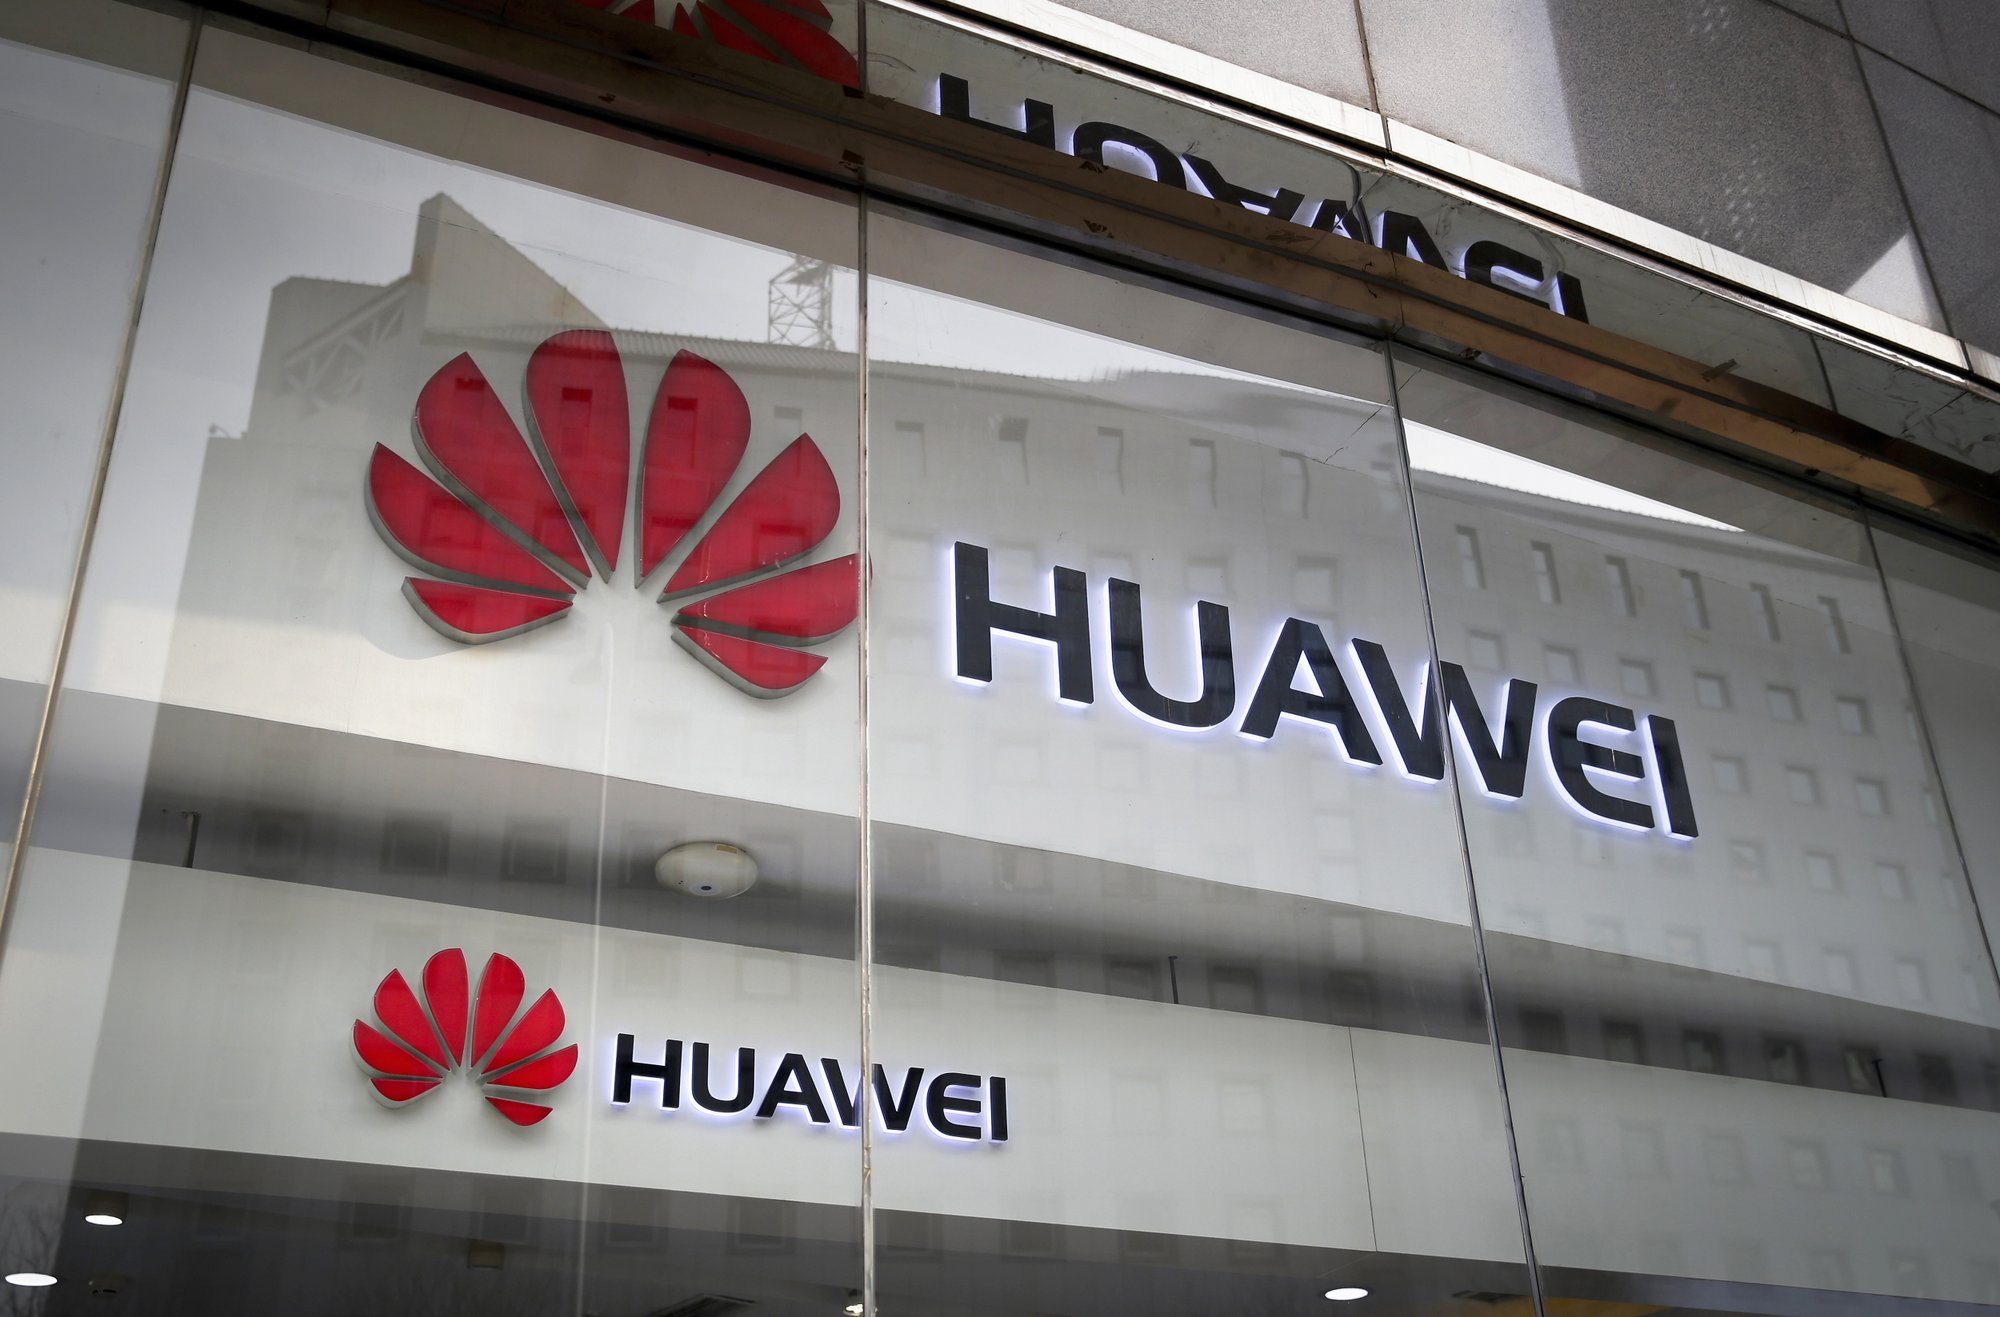 As US pushes to ban Huawei, UK considers softer approach